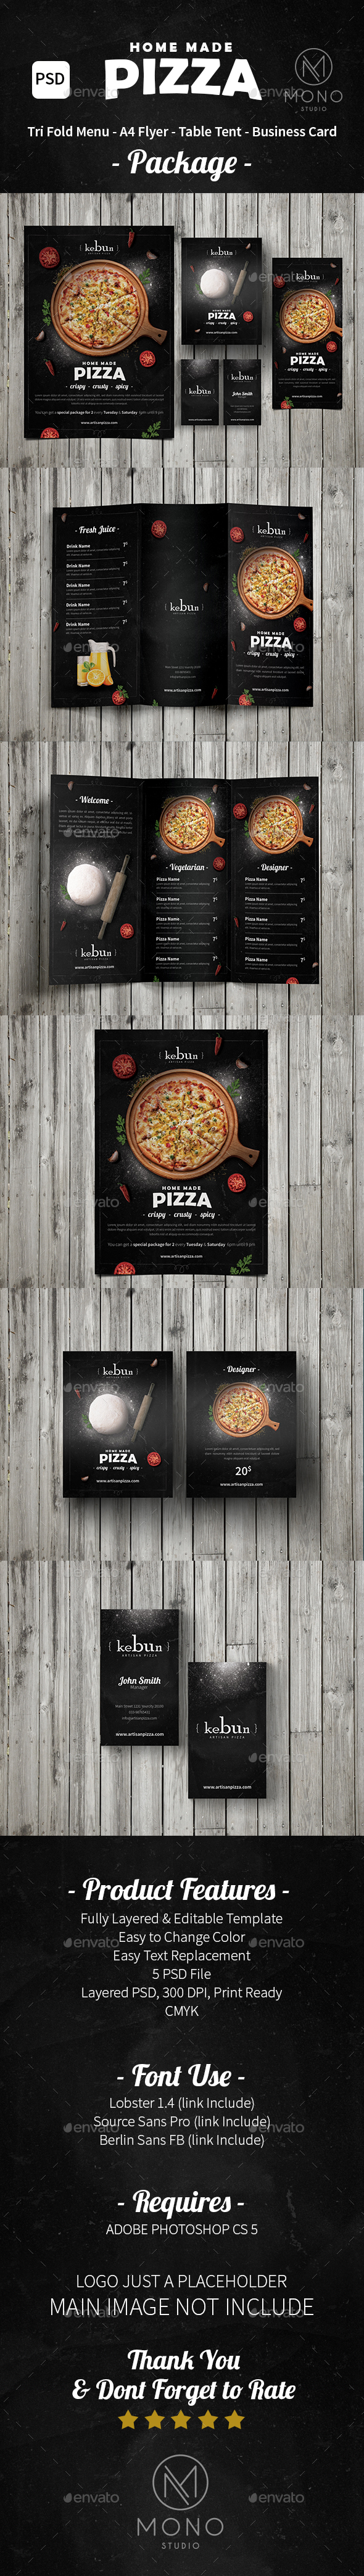 Pizza Menu Set/Rustic - Food Menus Print Templates